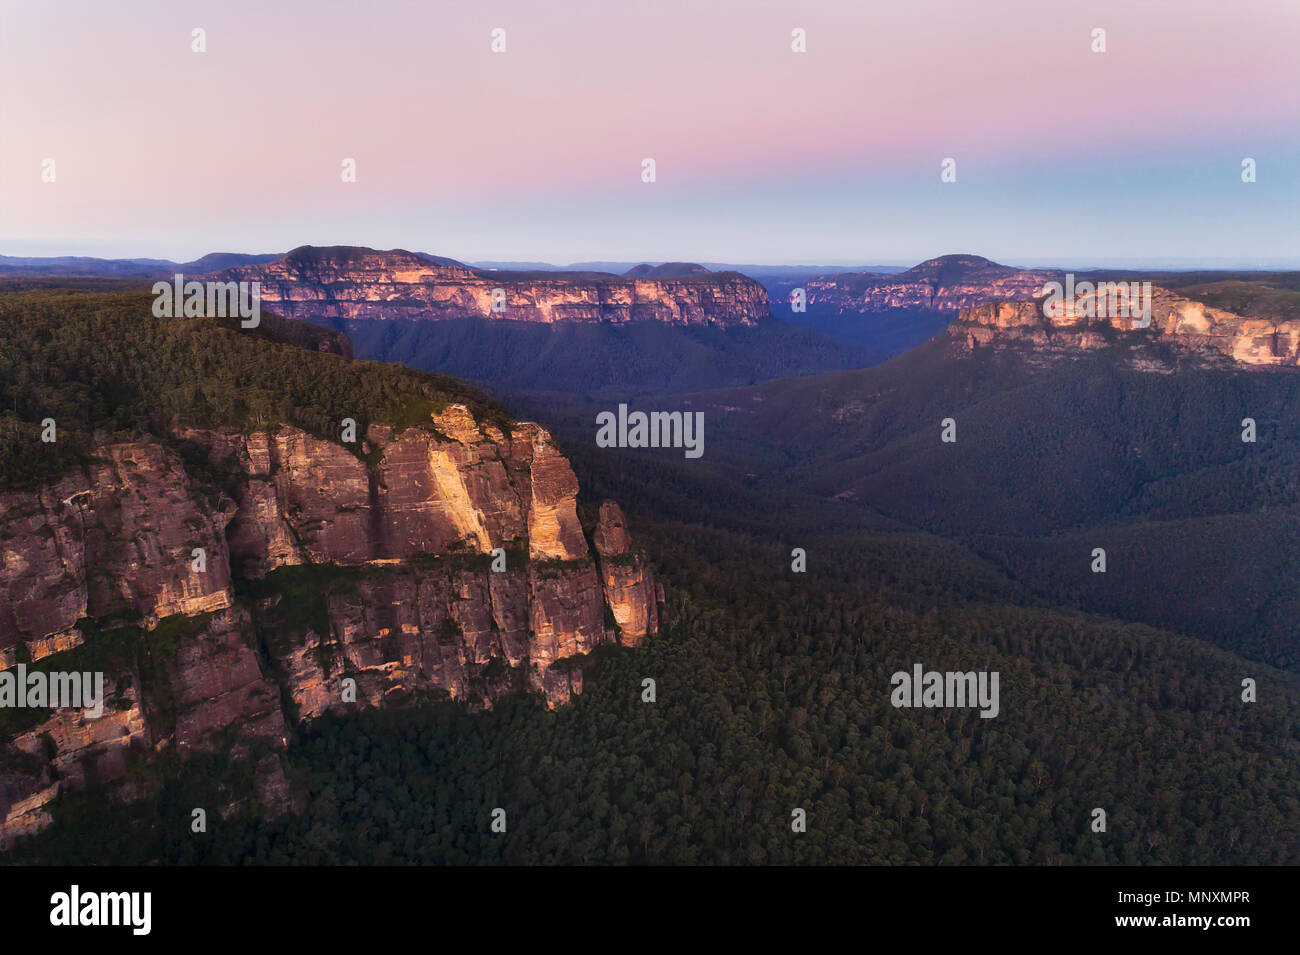 Blue Mountains Grand Canyon dal GOvett salto con pulpito rock cliffs al tramonto in elevati vista aerea verso il cielo rosa. Immagini Stock